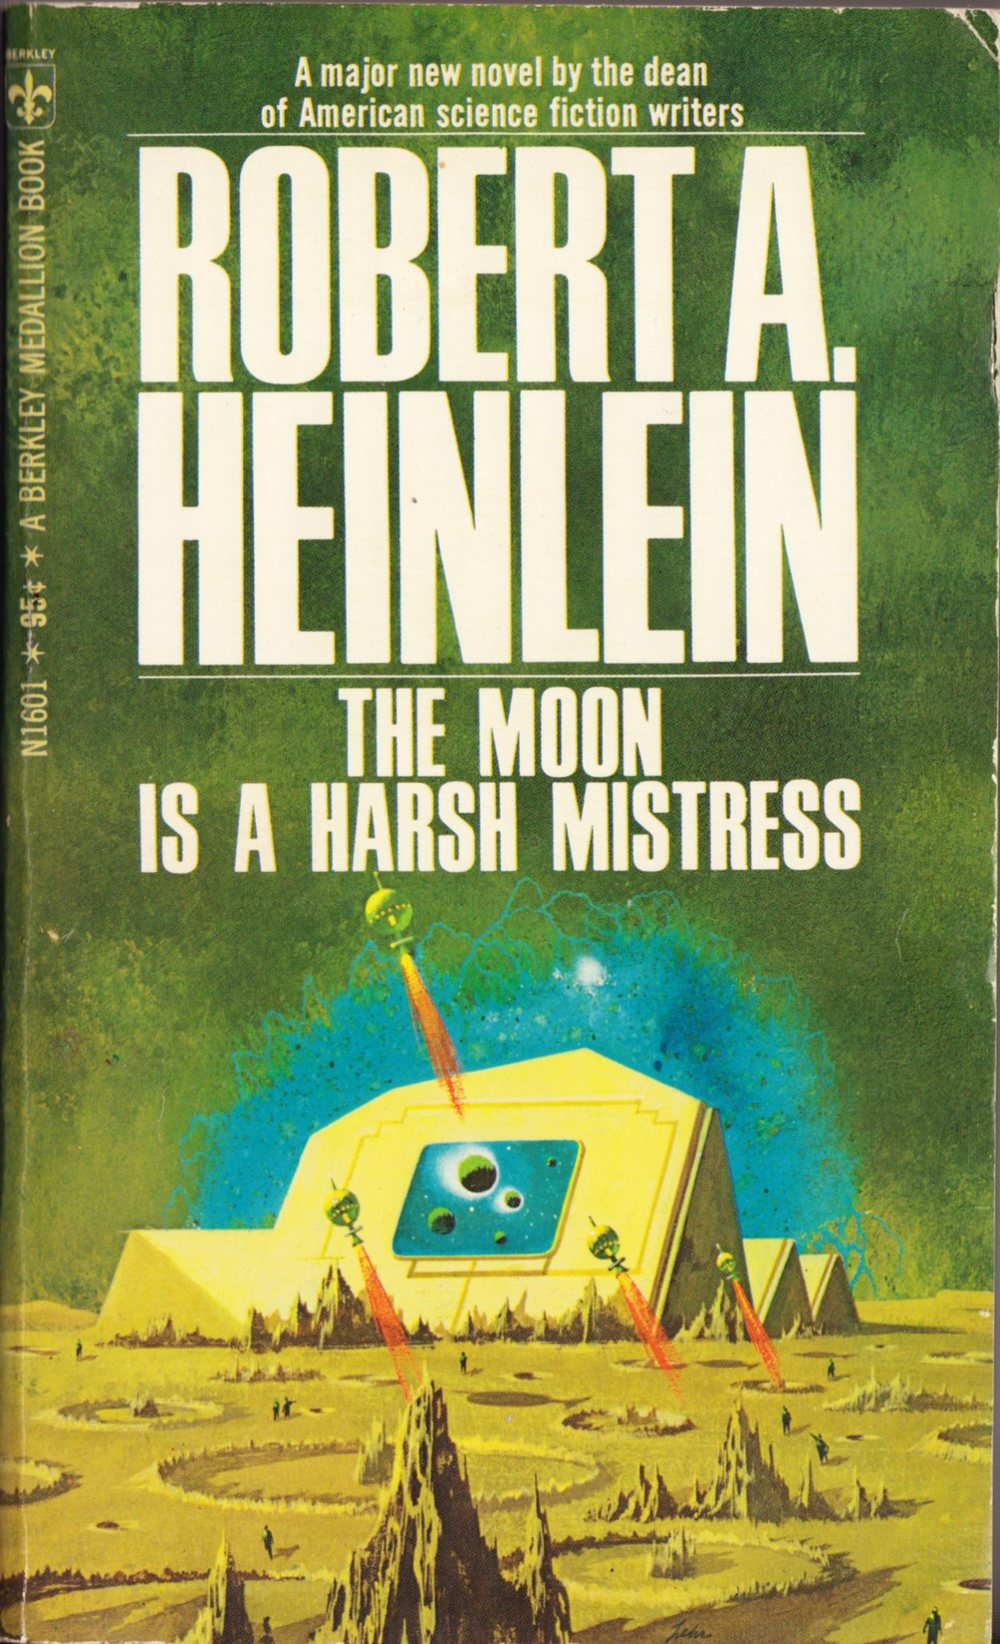 paul-lehr_the-moon-is-a-harsh-mistress-ny-berkley-19681.jpg